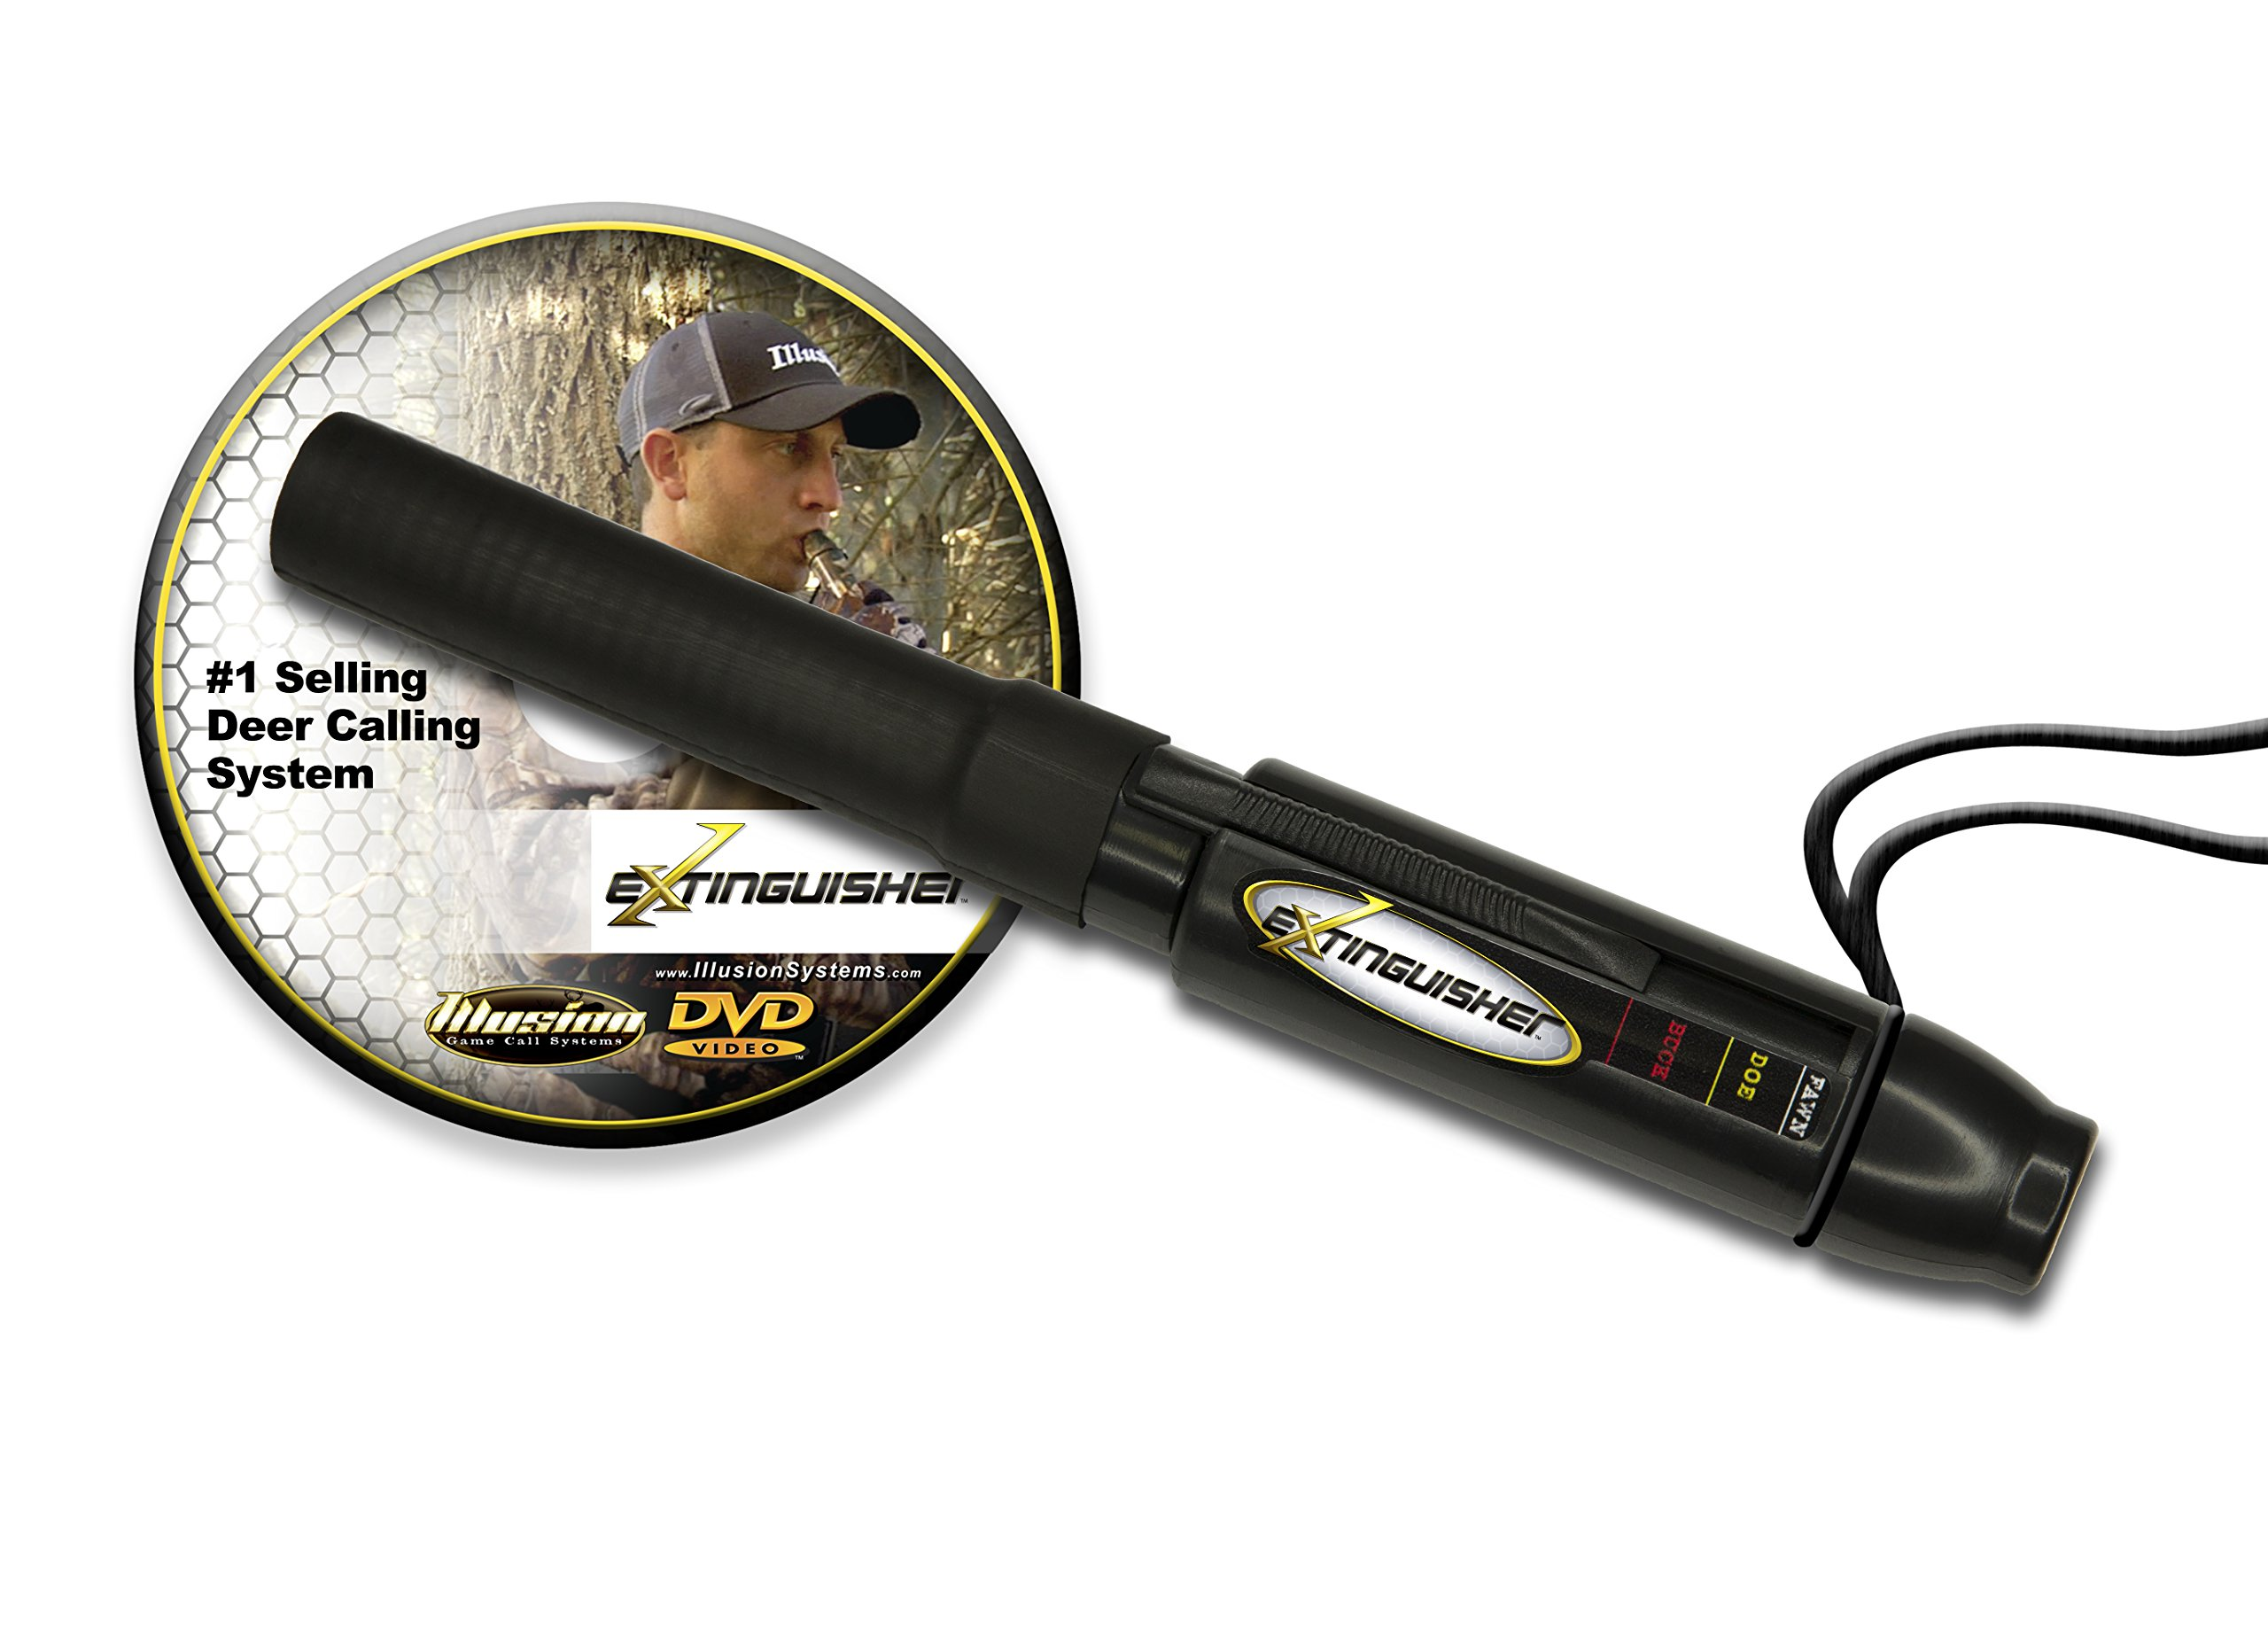 Extinguisher Deer Call (Black) with DVD Instructional! by Illusion (Image #1)